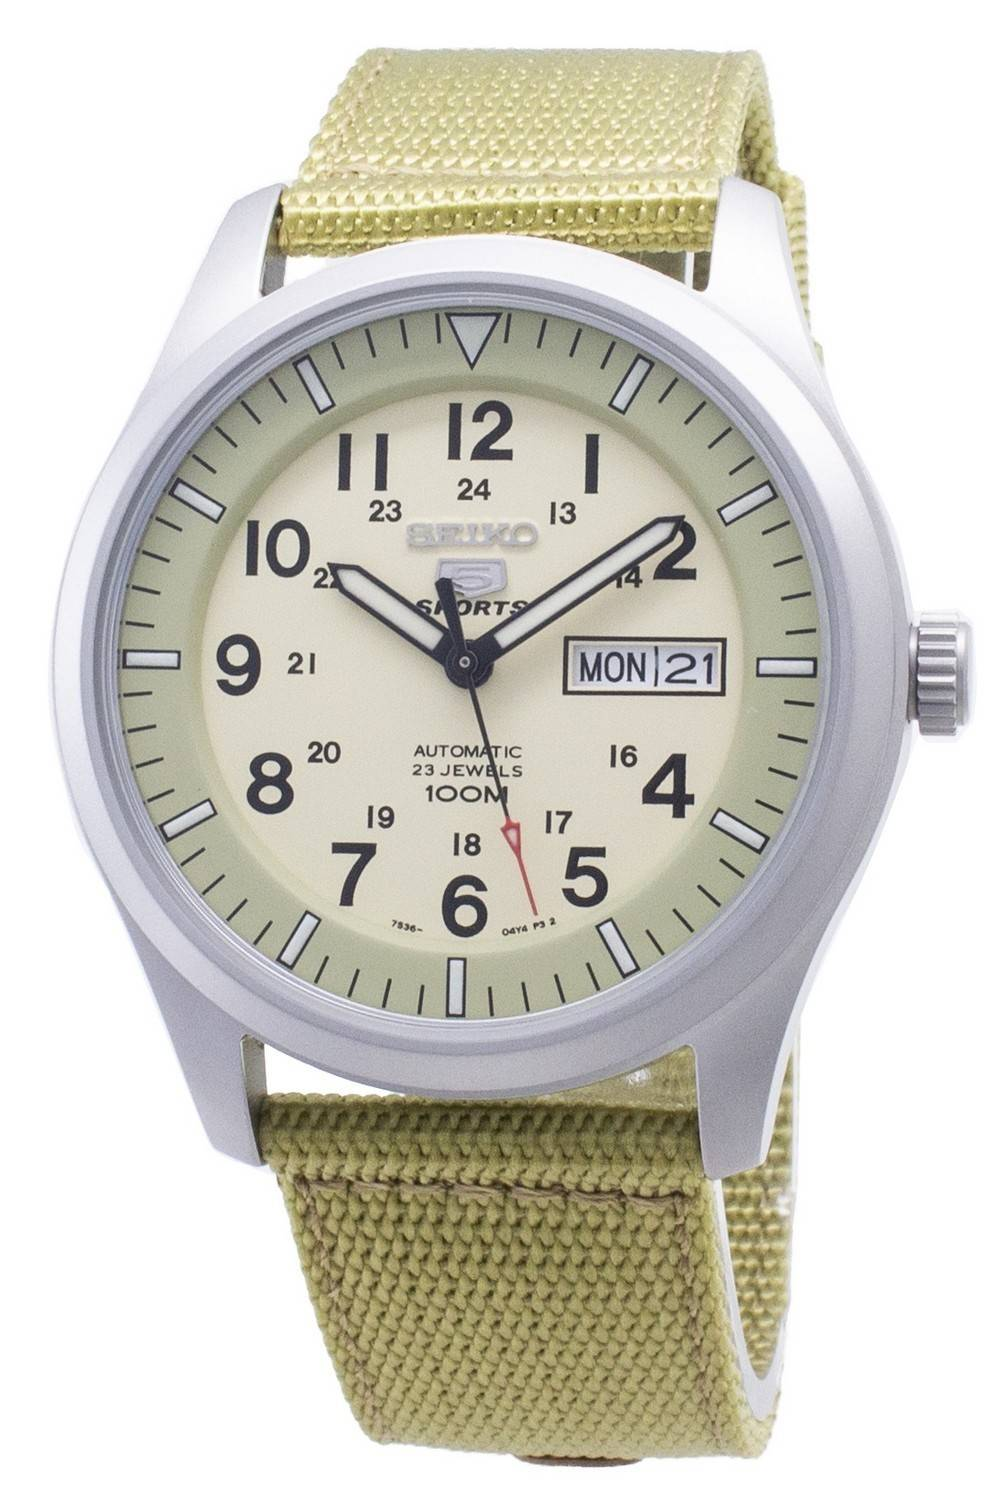 b08655915 Details about Seiko 5 Sports Automatic SNZG07K1 SNZG07K Military Nylon  Strap Mens Watch